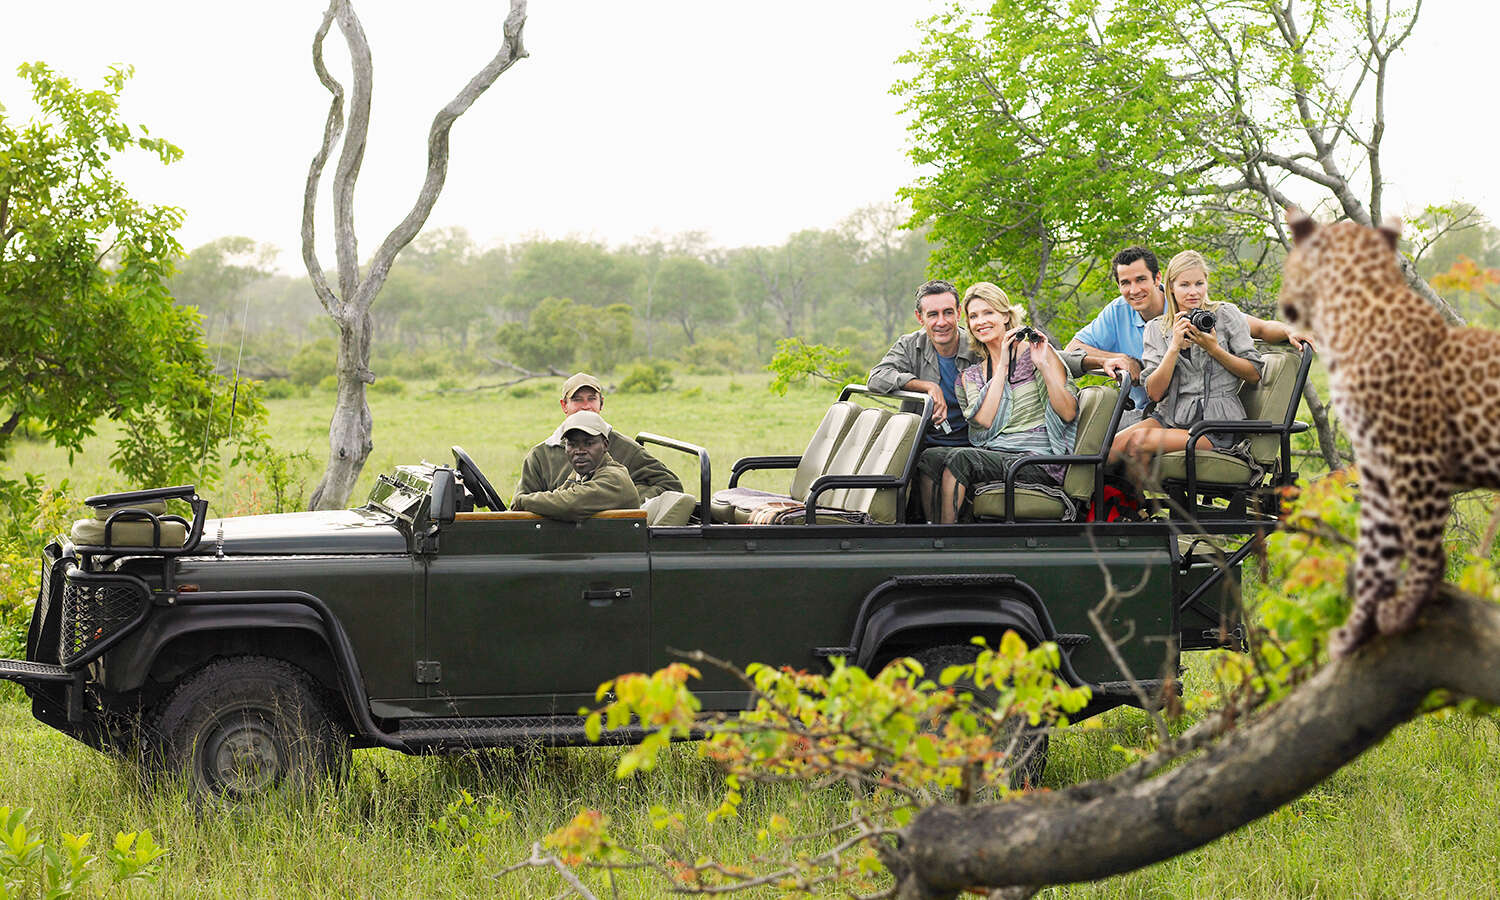 Tourists In Jeep